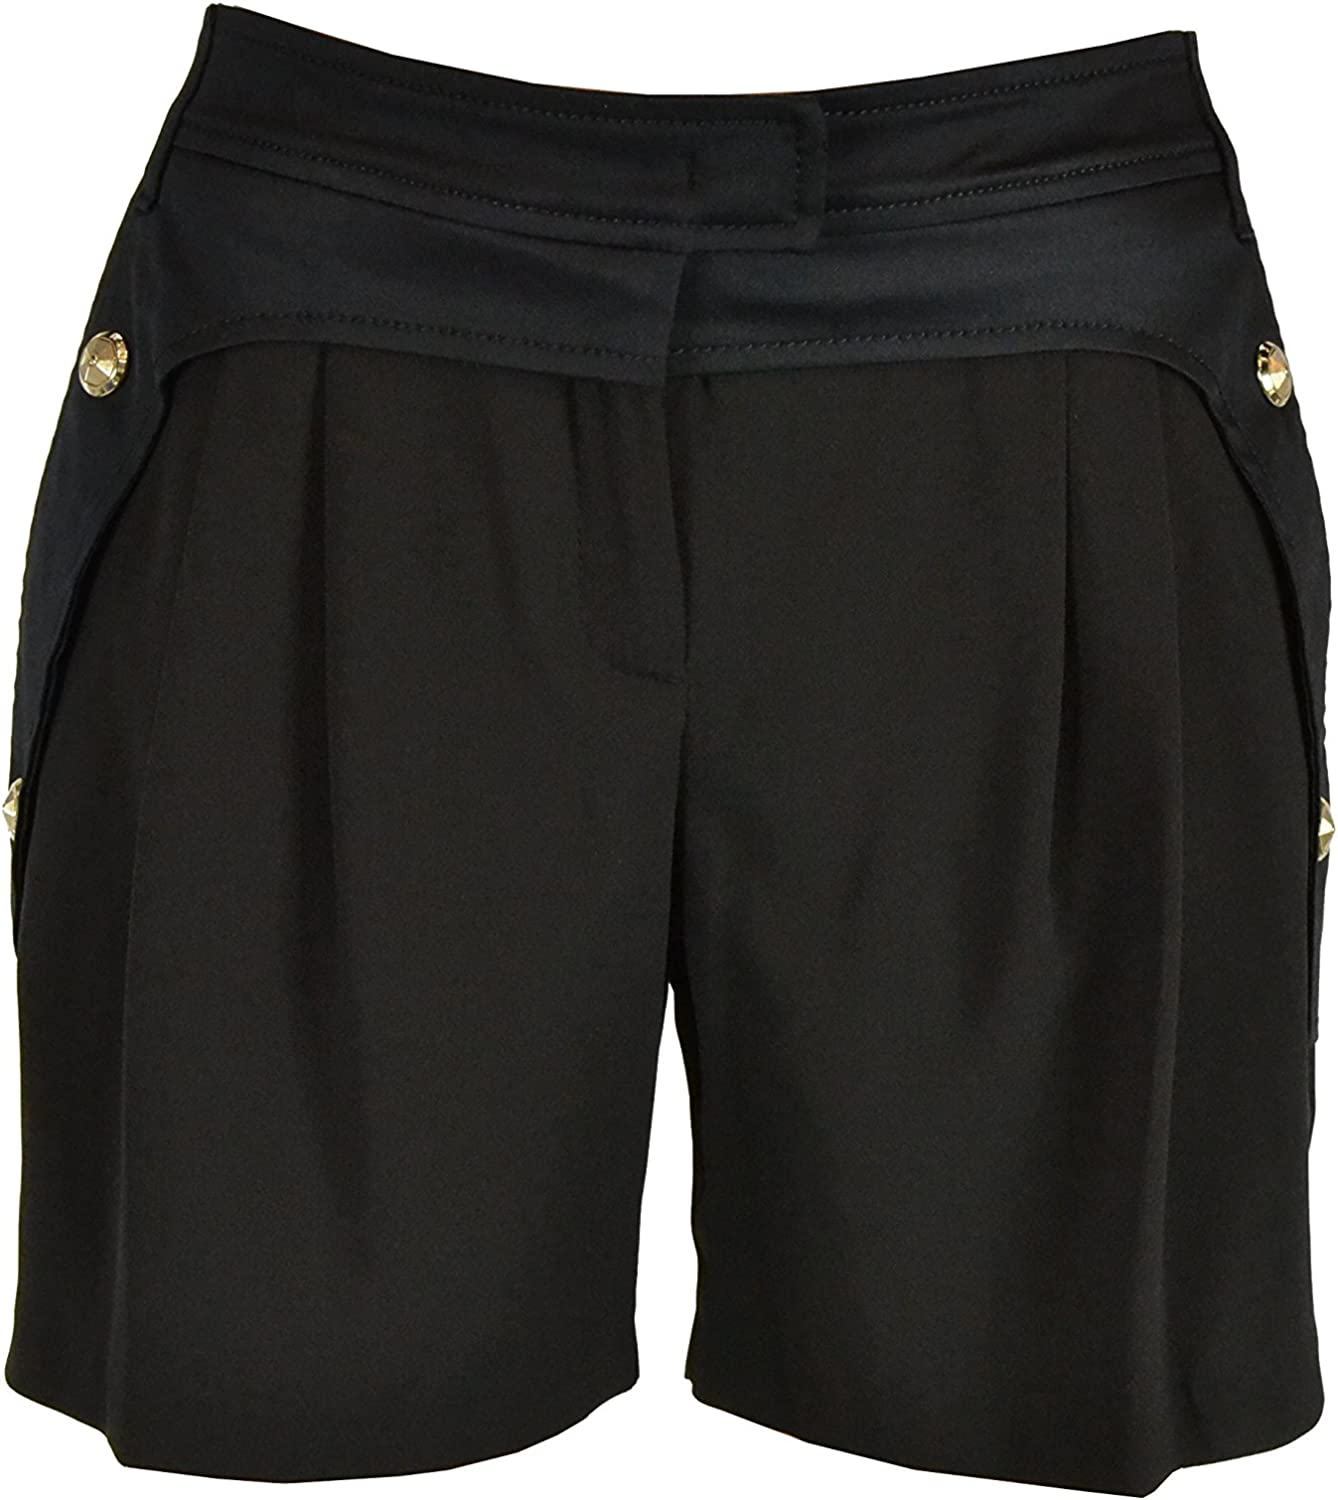 Versace Jeans Collection Women's Shorts Black